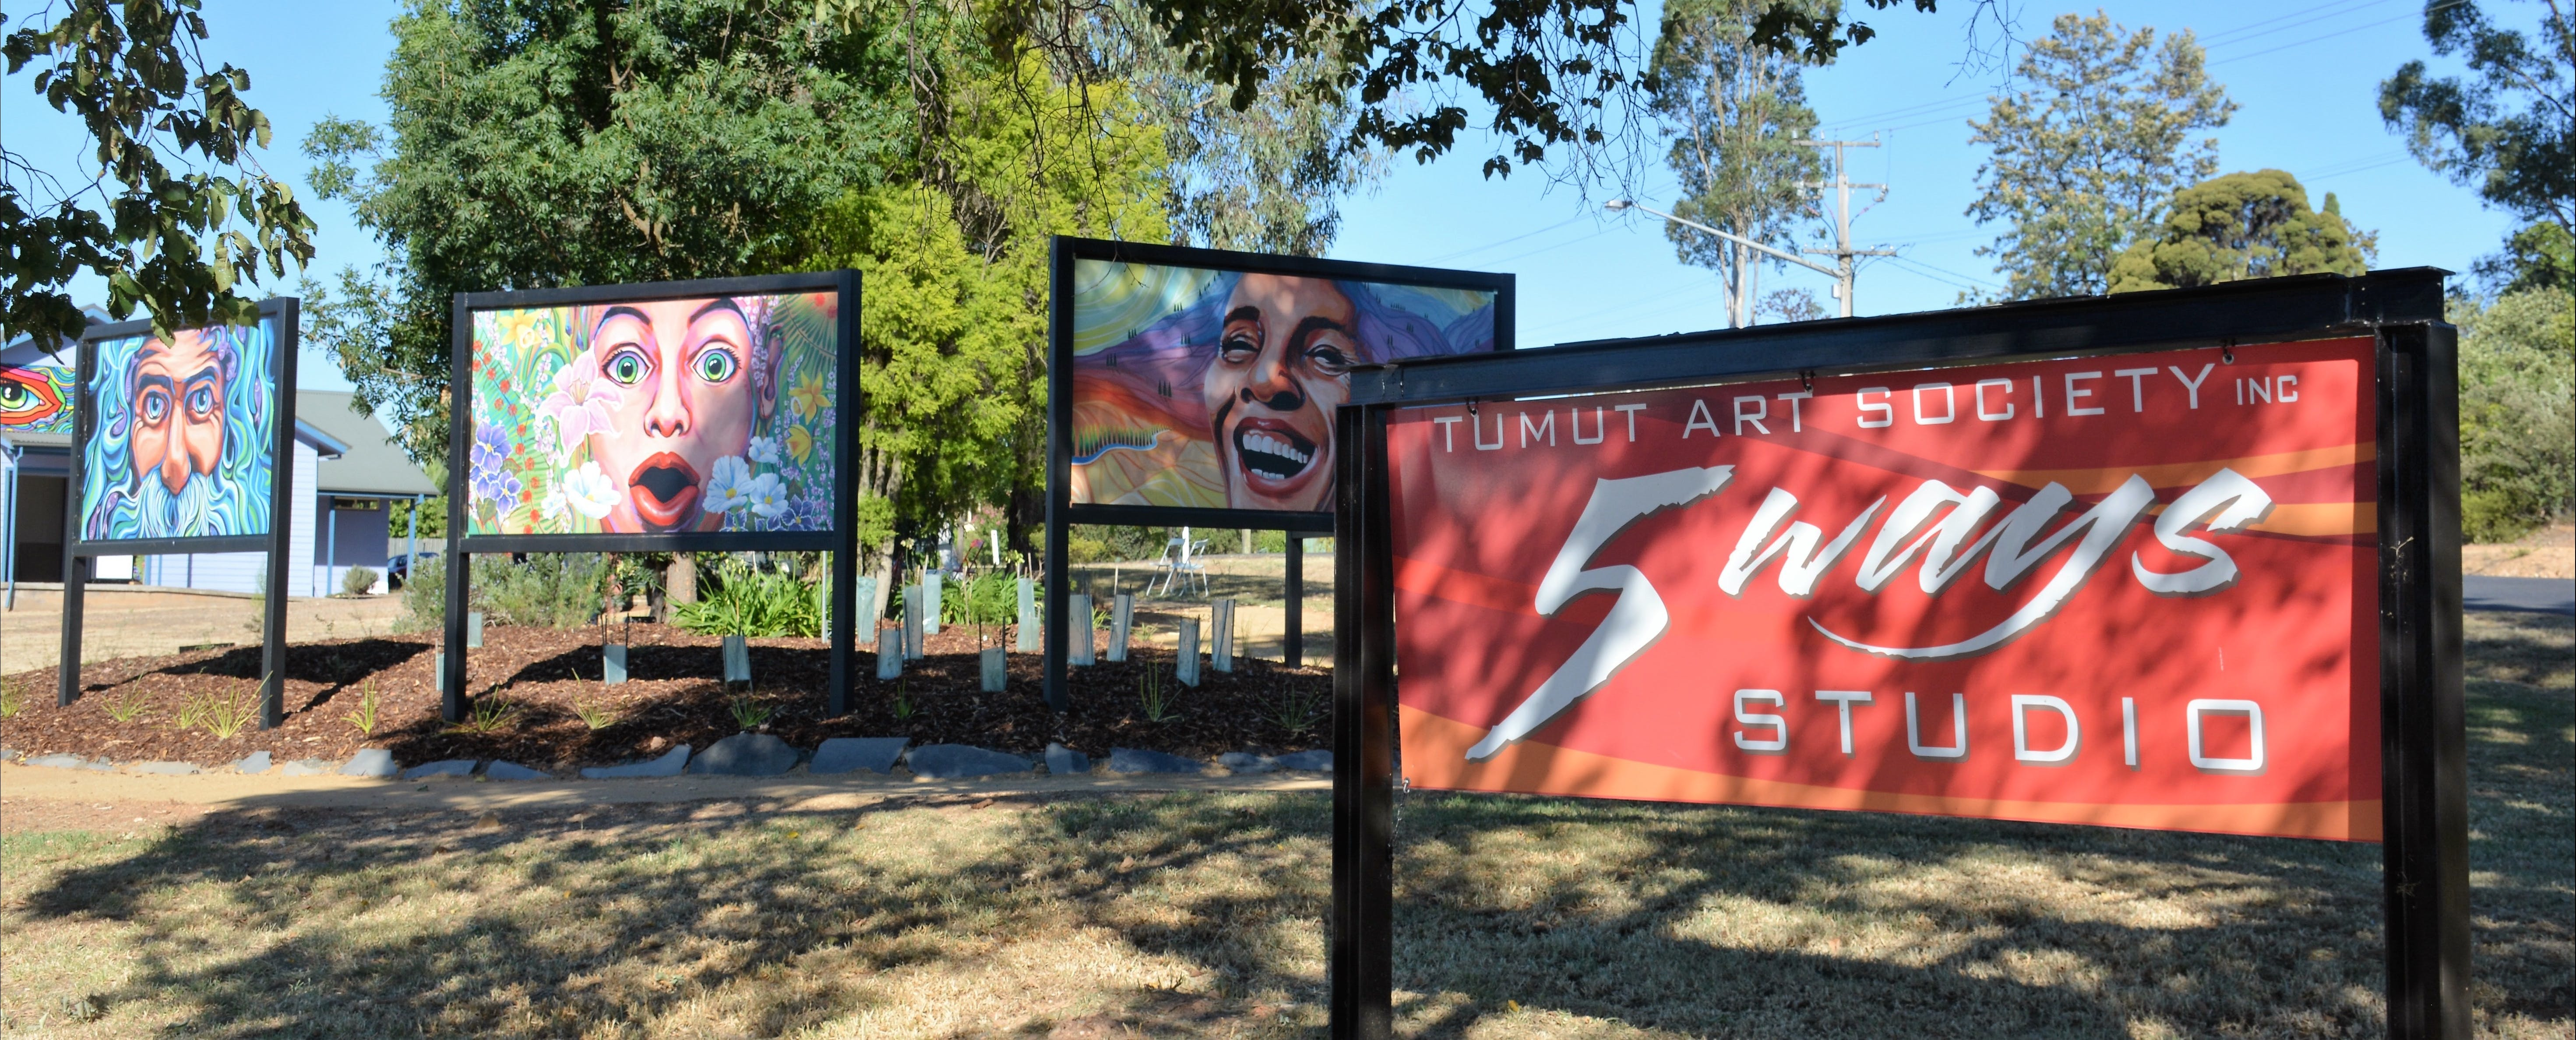 Tumut Art Society 5Ways Gallery - Accommodation Sunshine Coast